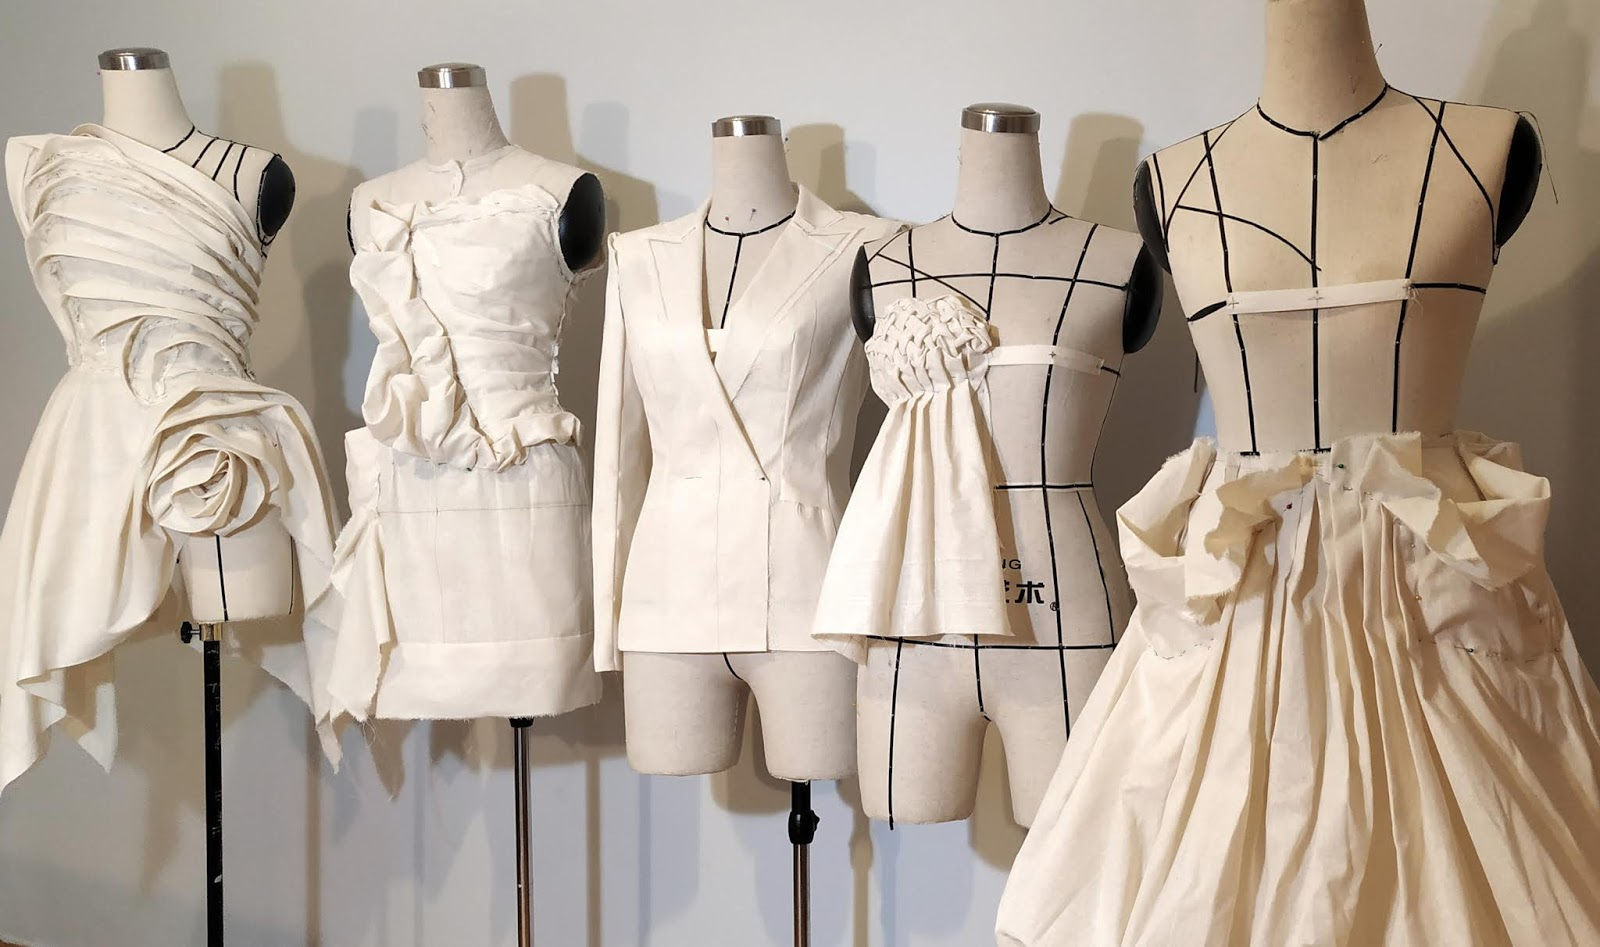 Elena Fashion Design Workshops Zero Waste Design Projects One To One Fashion Design Study